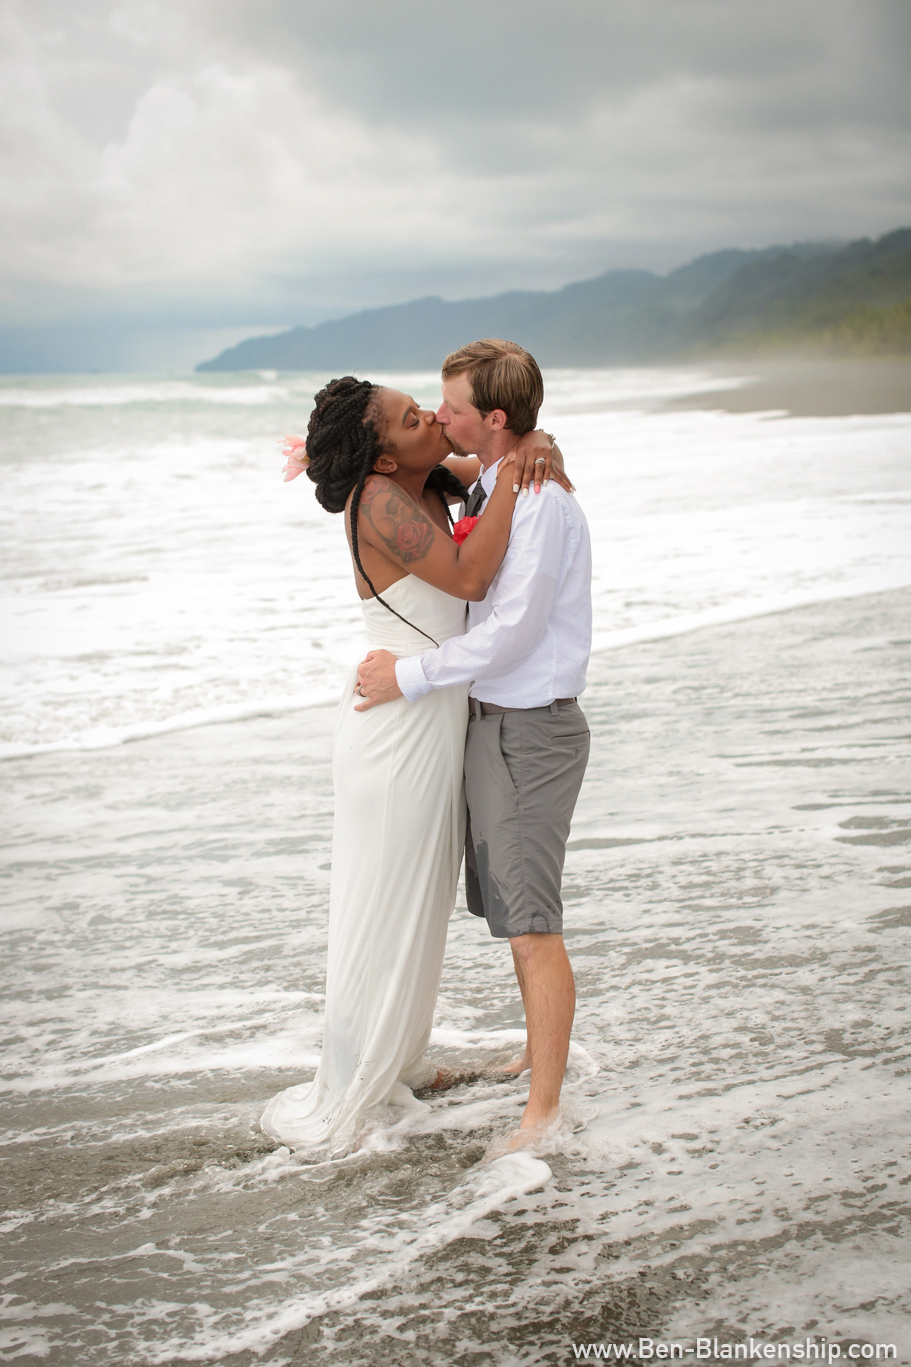 Sherri and Jory exchange a kiss in the surf. Taken in Carate, Costa Rica. June 2018.